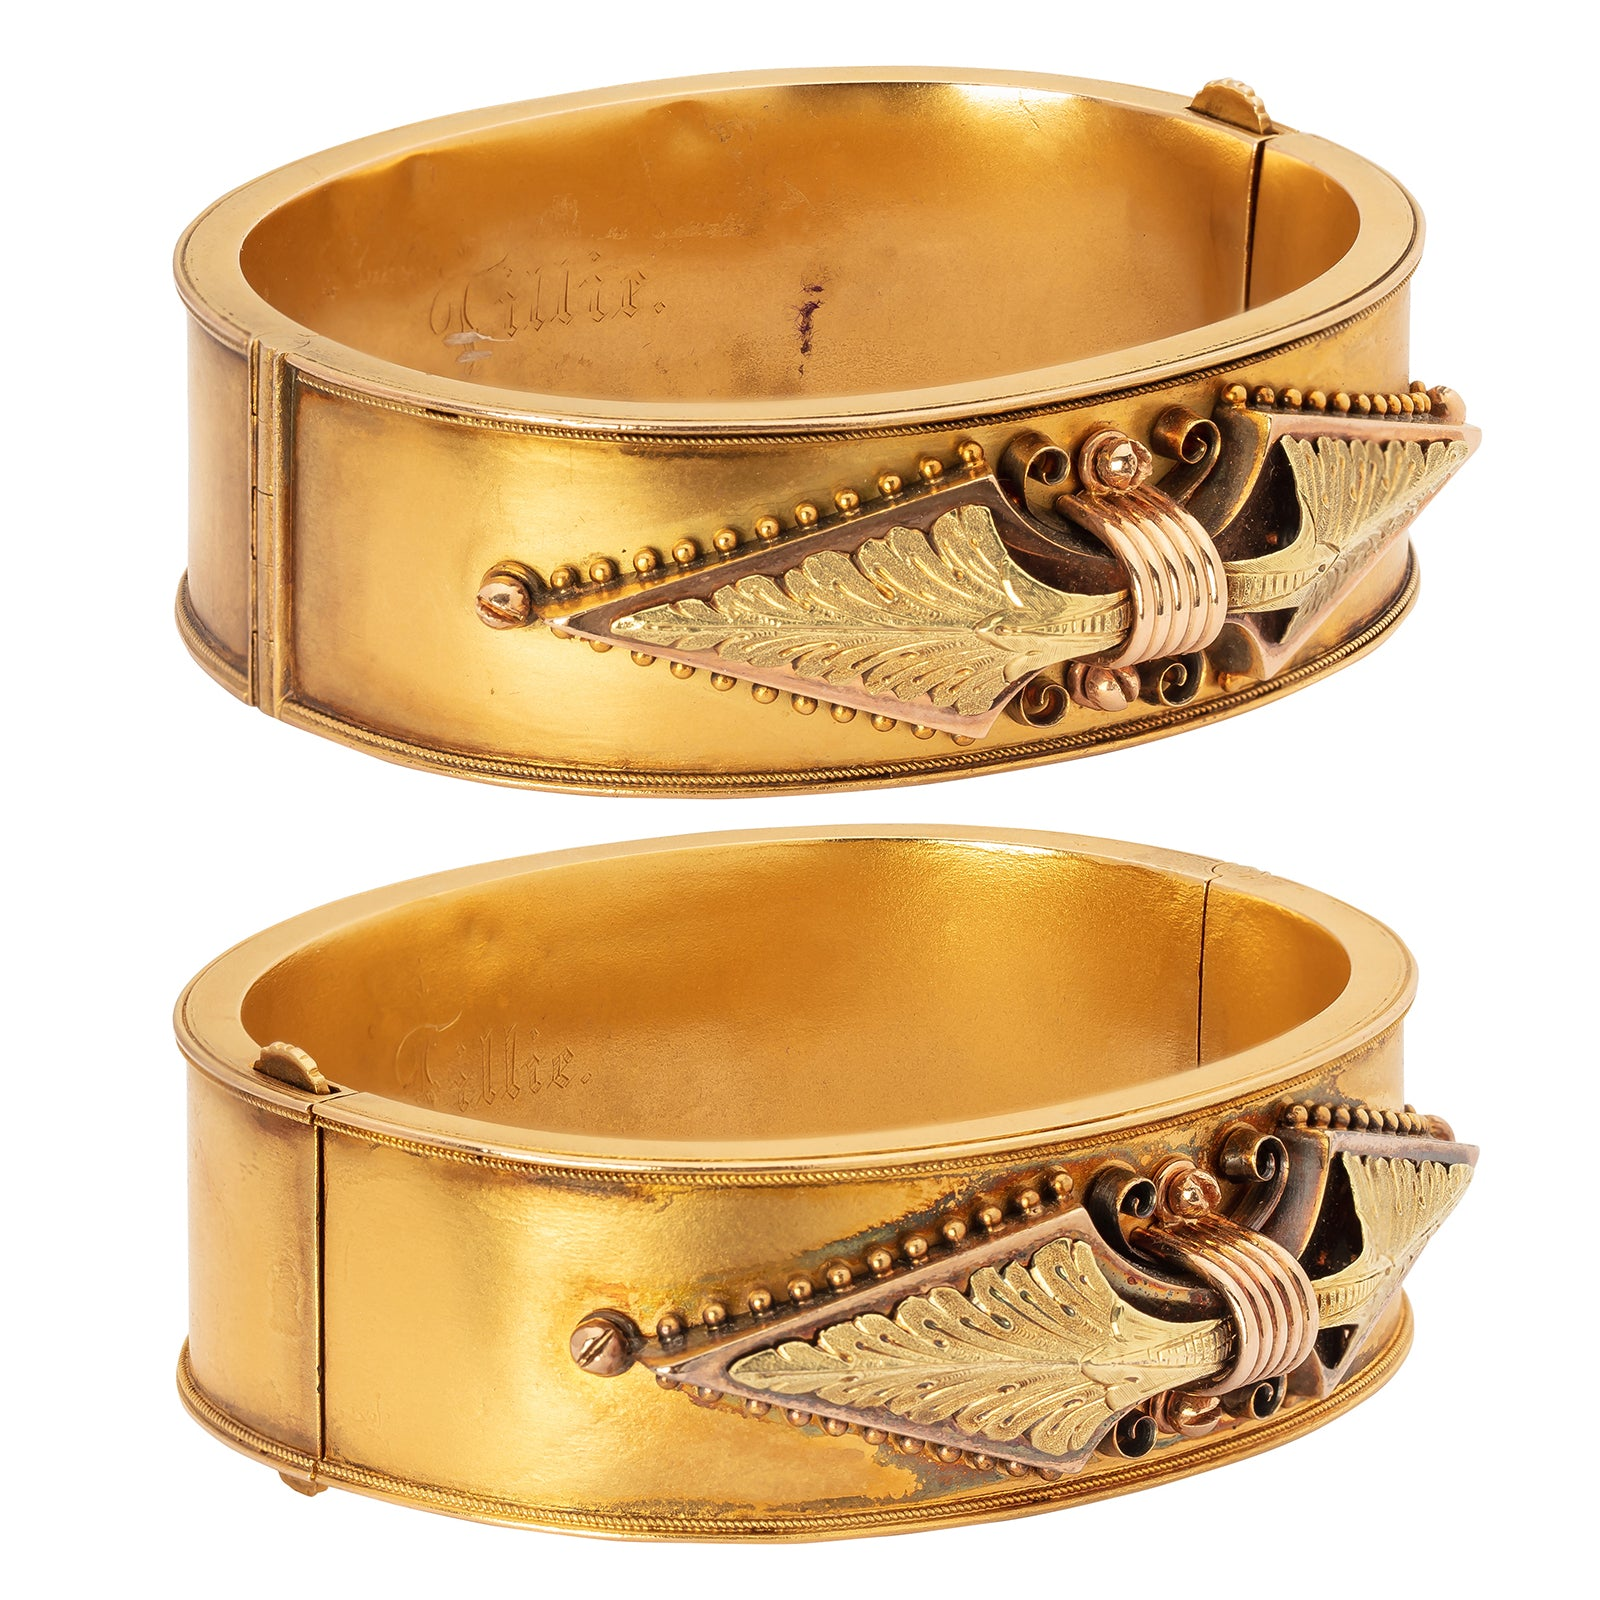 Antique & Vintage Jewelry Pair of Two-Tone Gold Bangle Bracelets - Bracelets - Broken English Jewelry